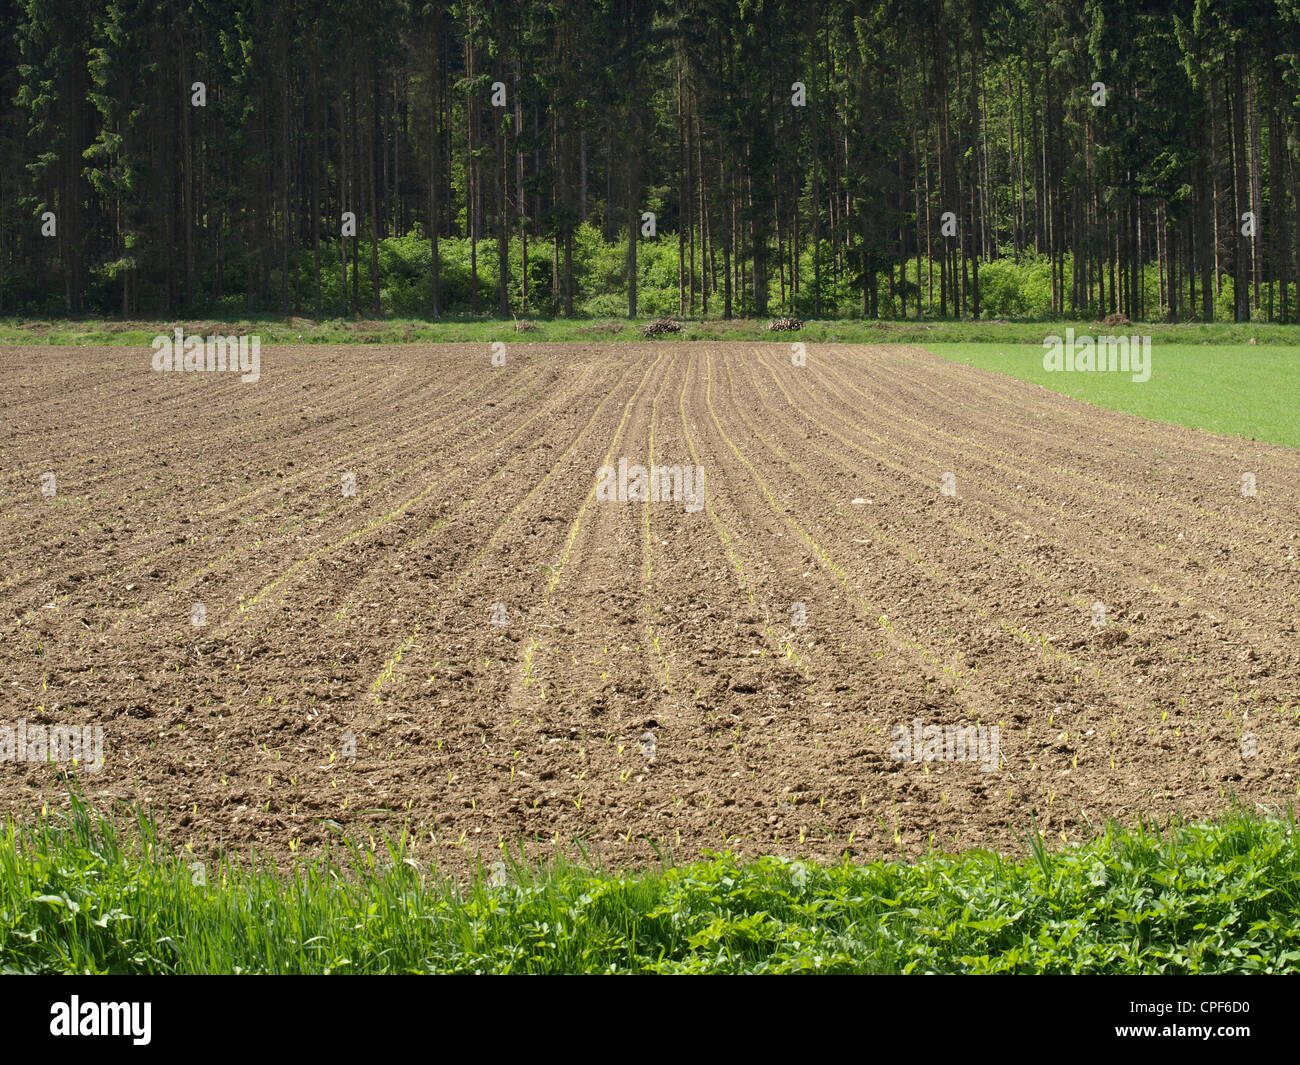 maize field / Zea mays / Maisfeld - Stock Image